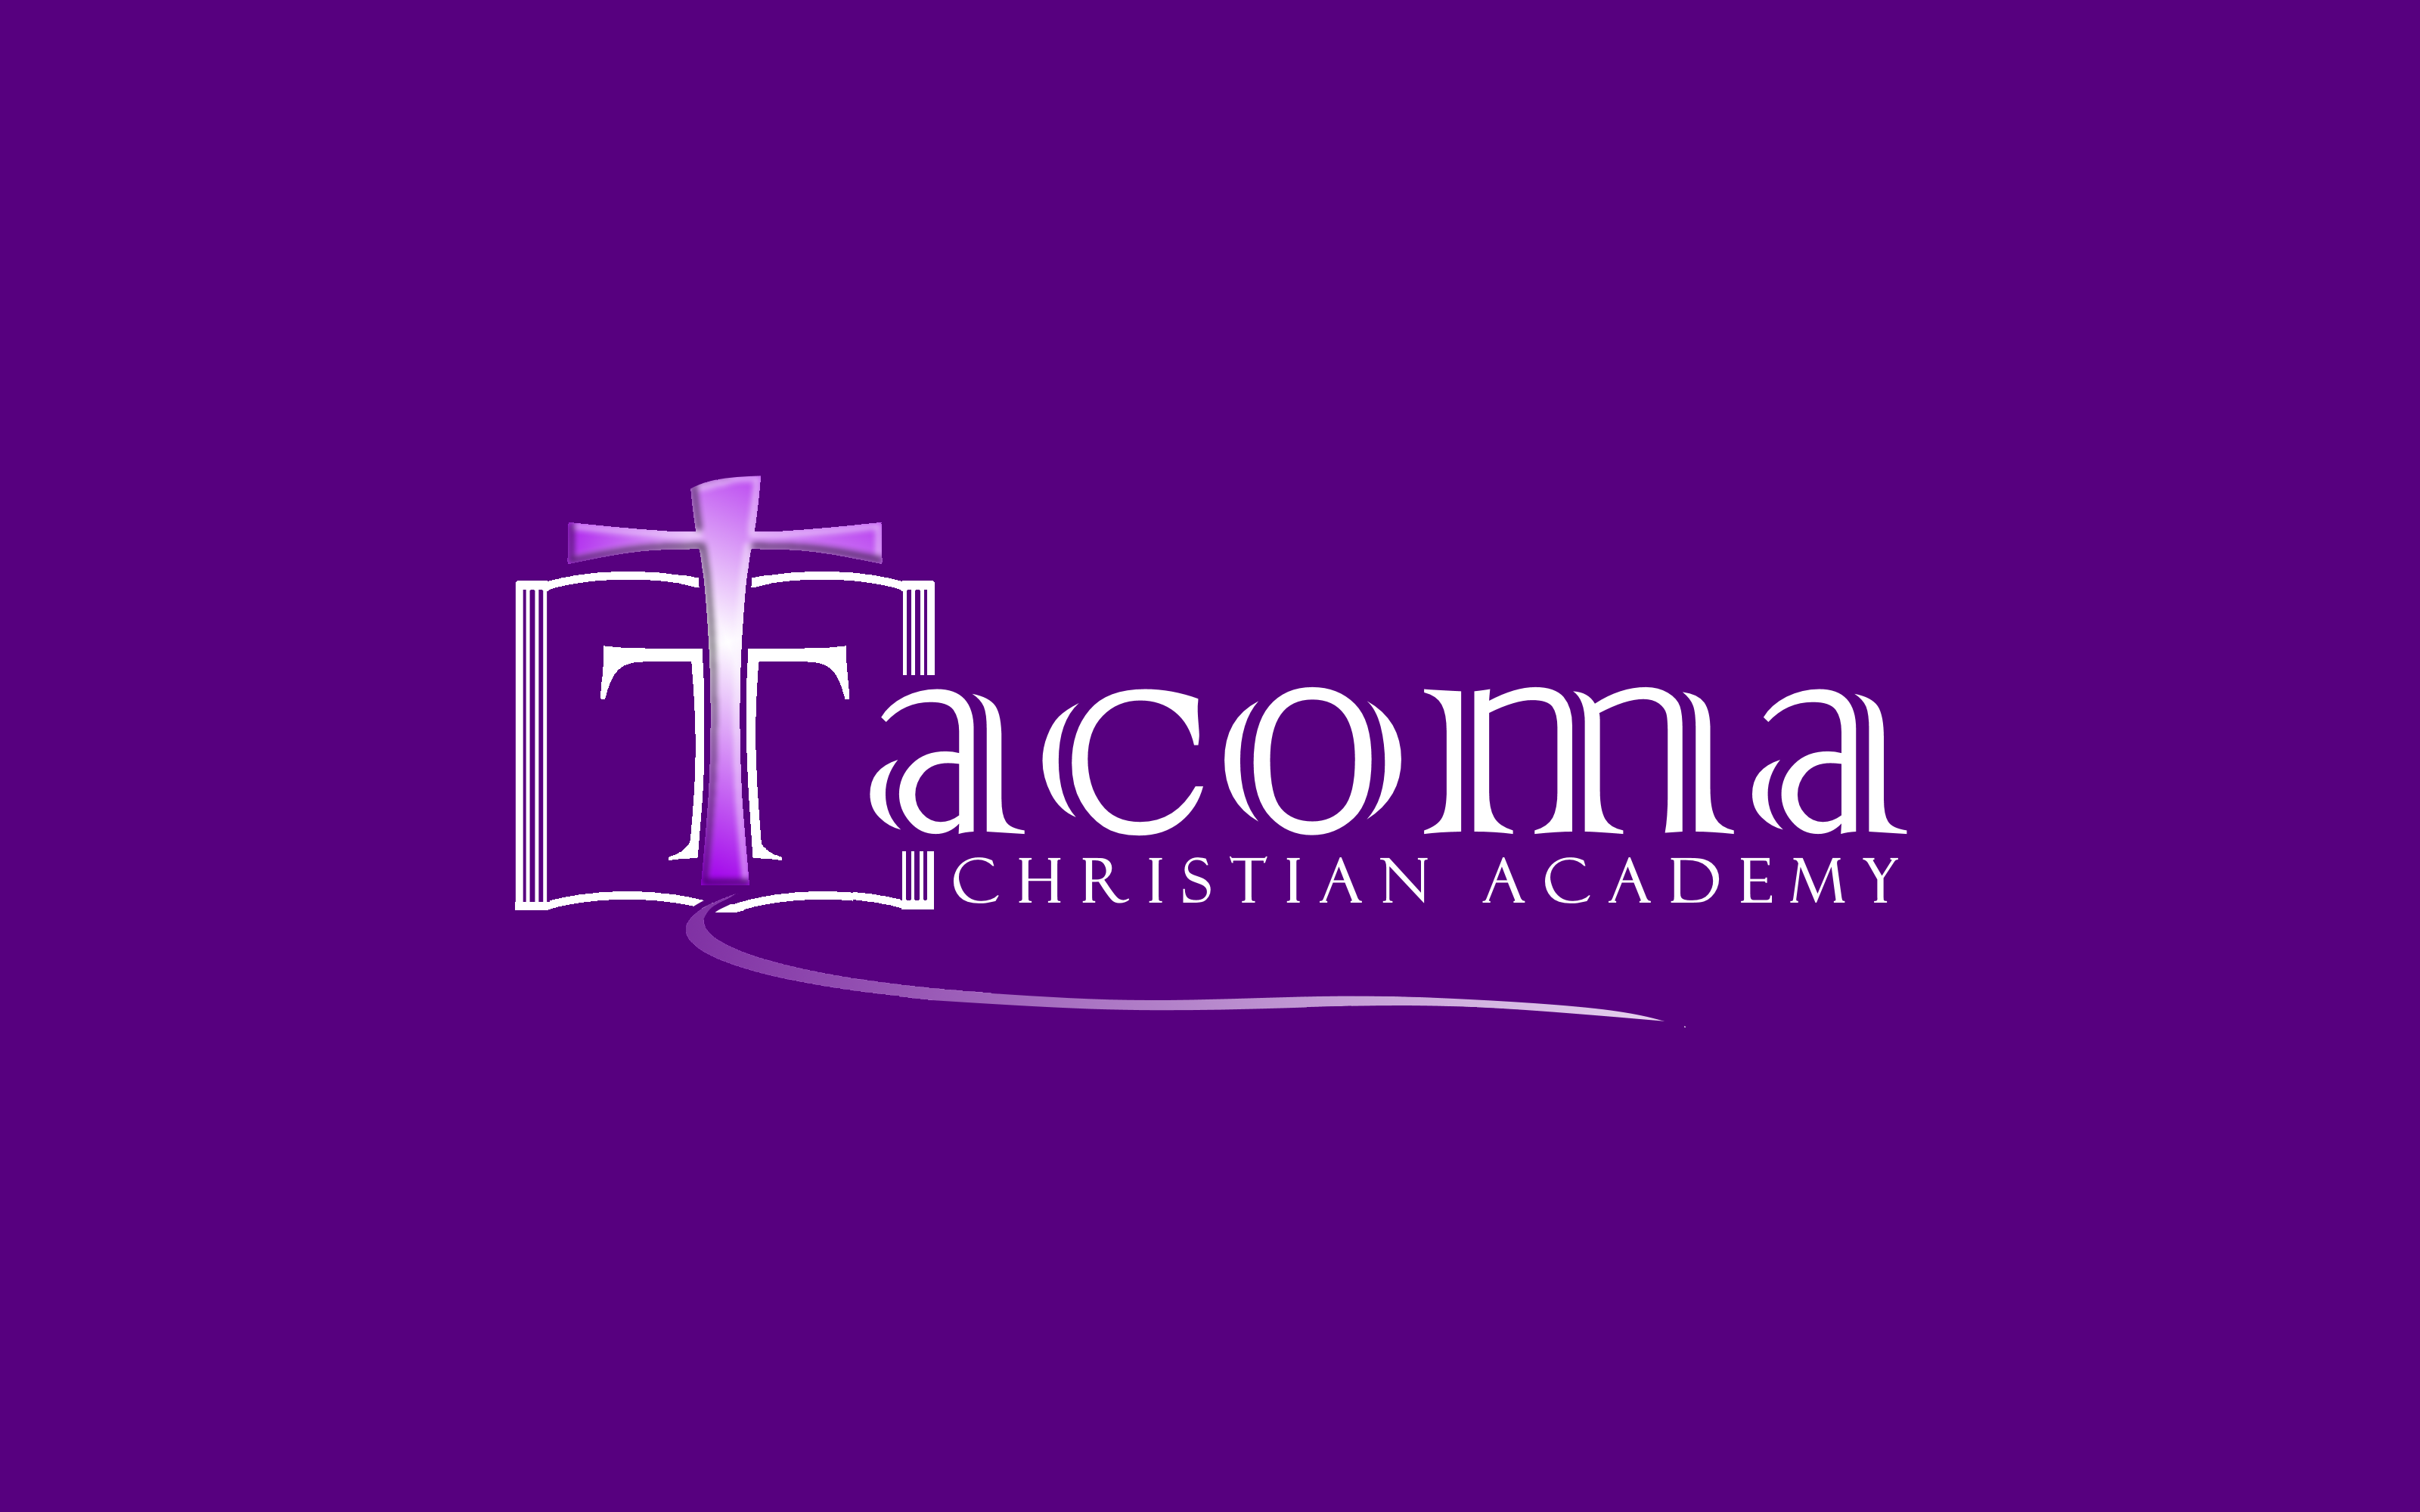 Logo Design by Roberto Bassi - Entry No. 46 in the Logo Design Contest Imaginative Logo Design for Tacoma Christian Academy.